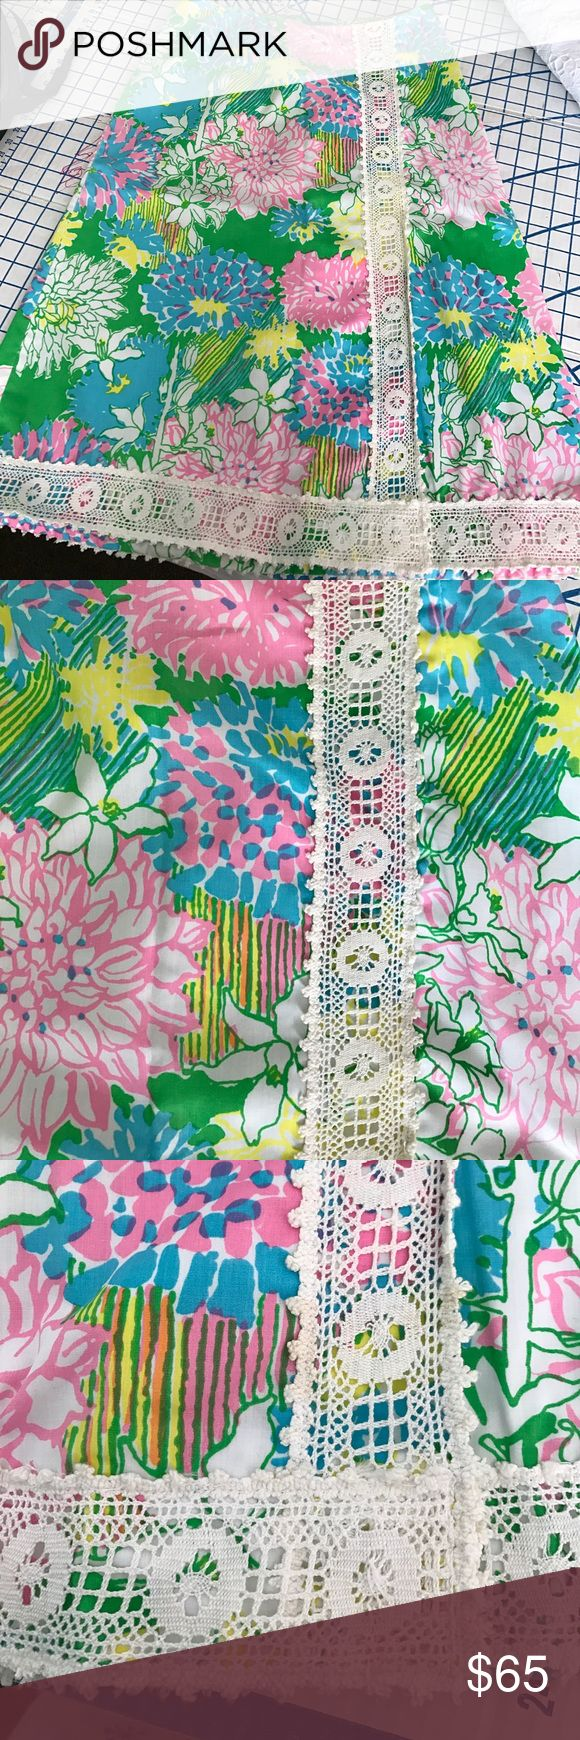 """Vintage Lilly skirt in very """"now"""" midi length Floral fabulousness! Vintage Lilly, trim and all. Great colors! Hem needs tacking up in one place. Waist 14, length 26. Classic Lilly!!!! Skirts"""